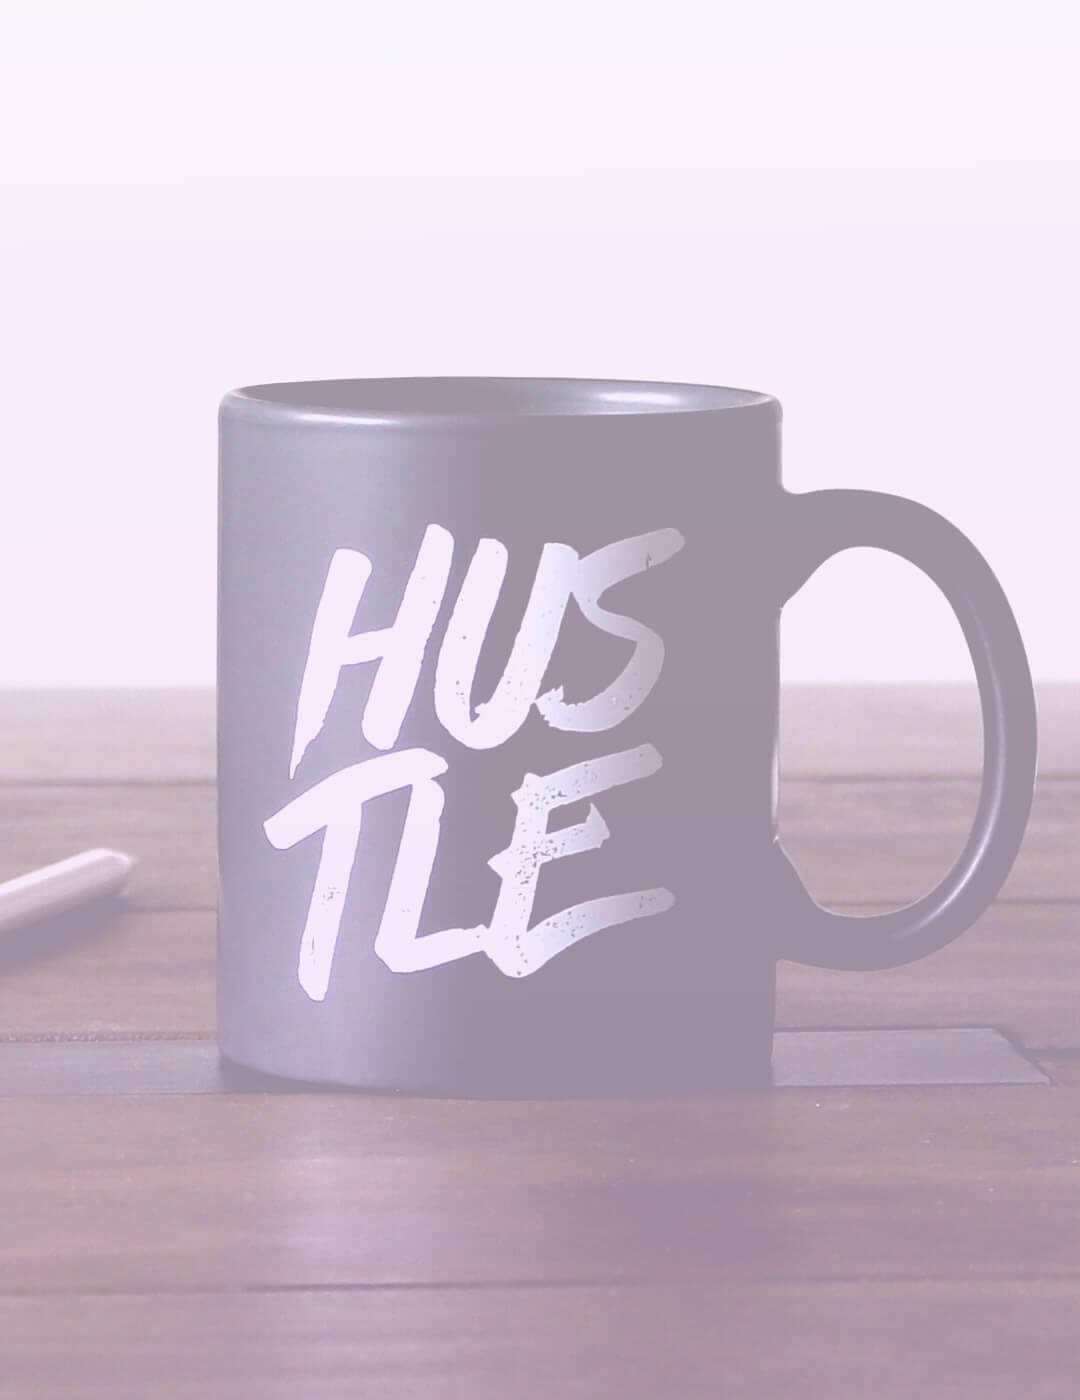 a cup with word hustle written on it as an idea for boring life